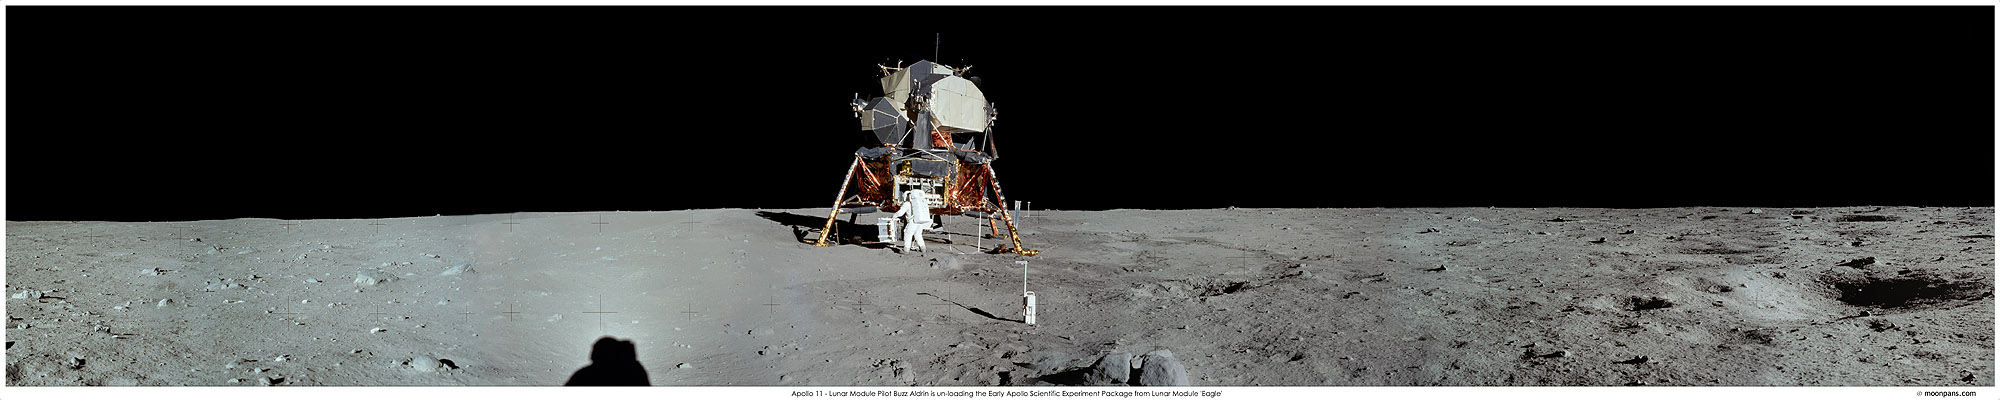 Apollo 11 Photos EASEP panorama Photo: moonpans.com/prints/40_A11easep.htm